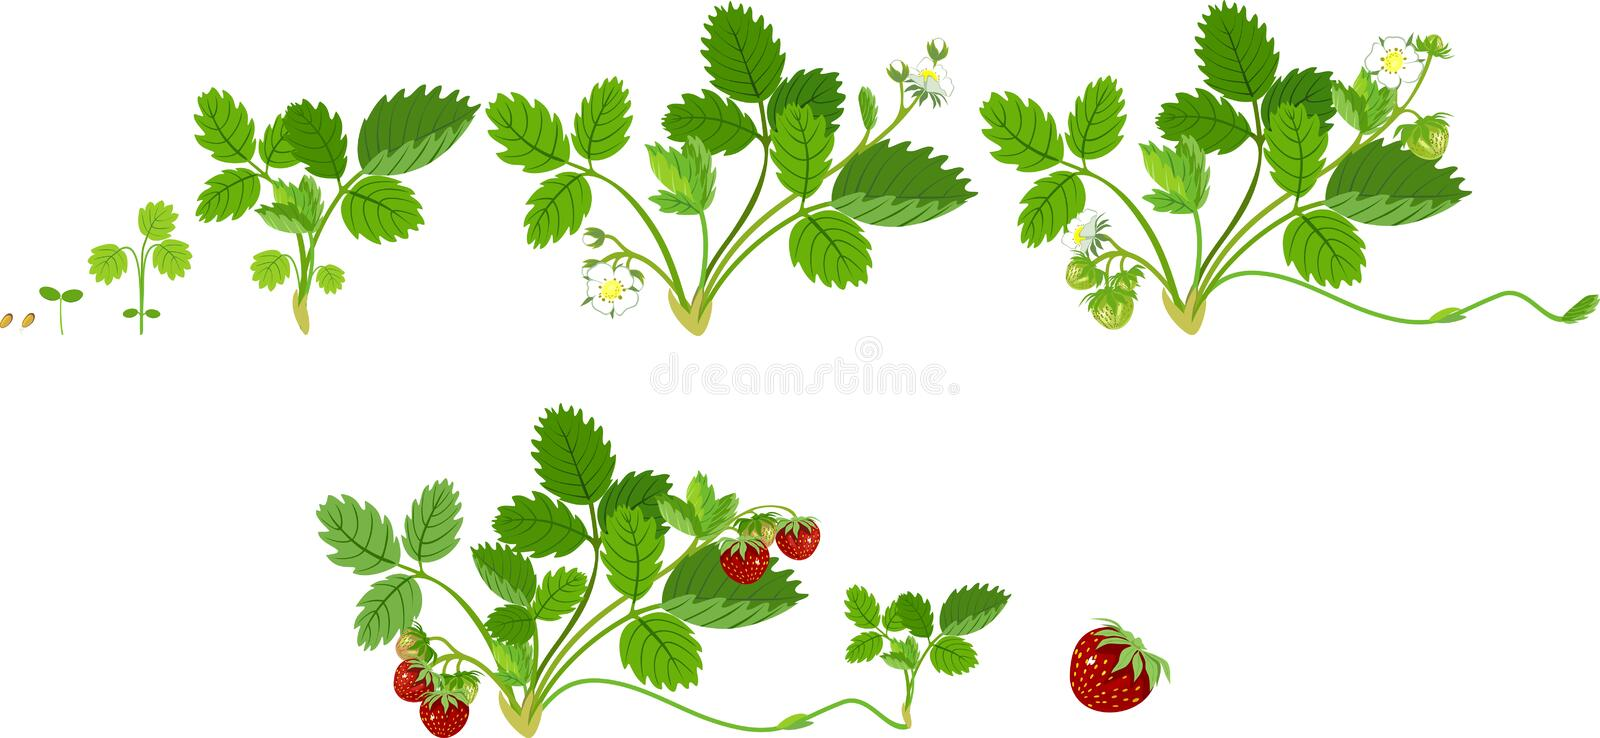 Growth stages of strawberry plant royalty free illustration